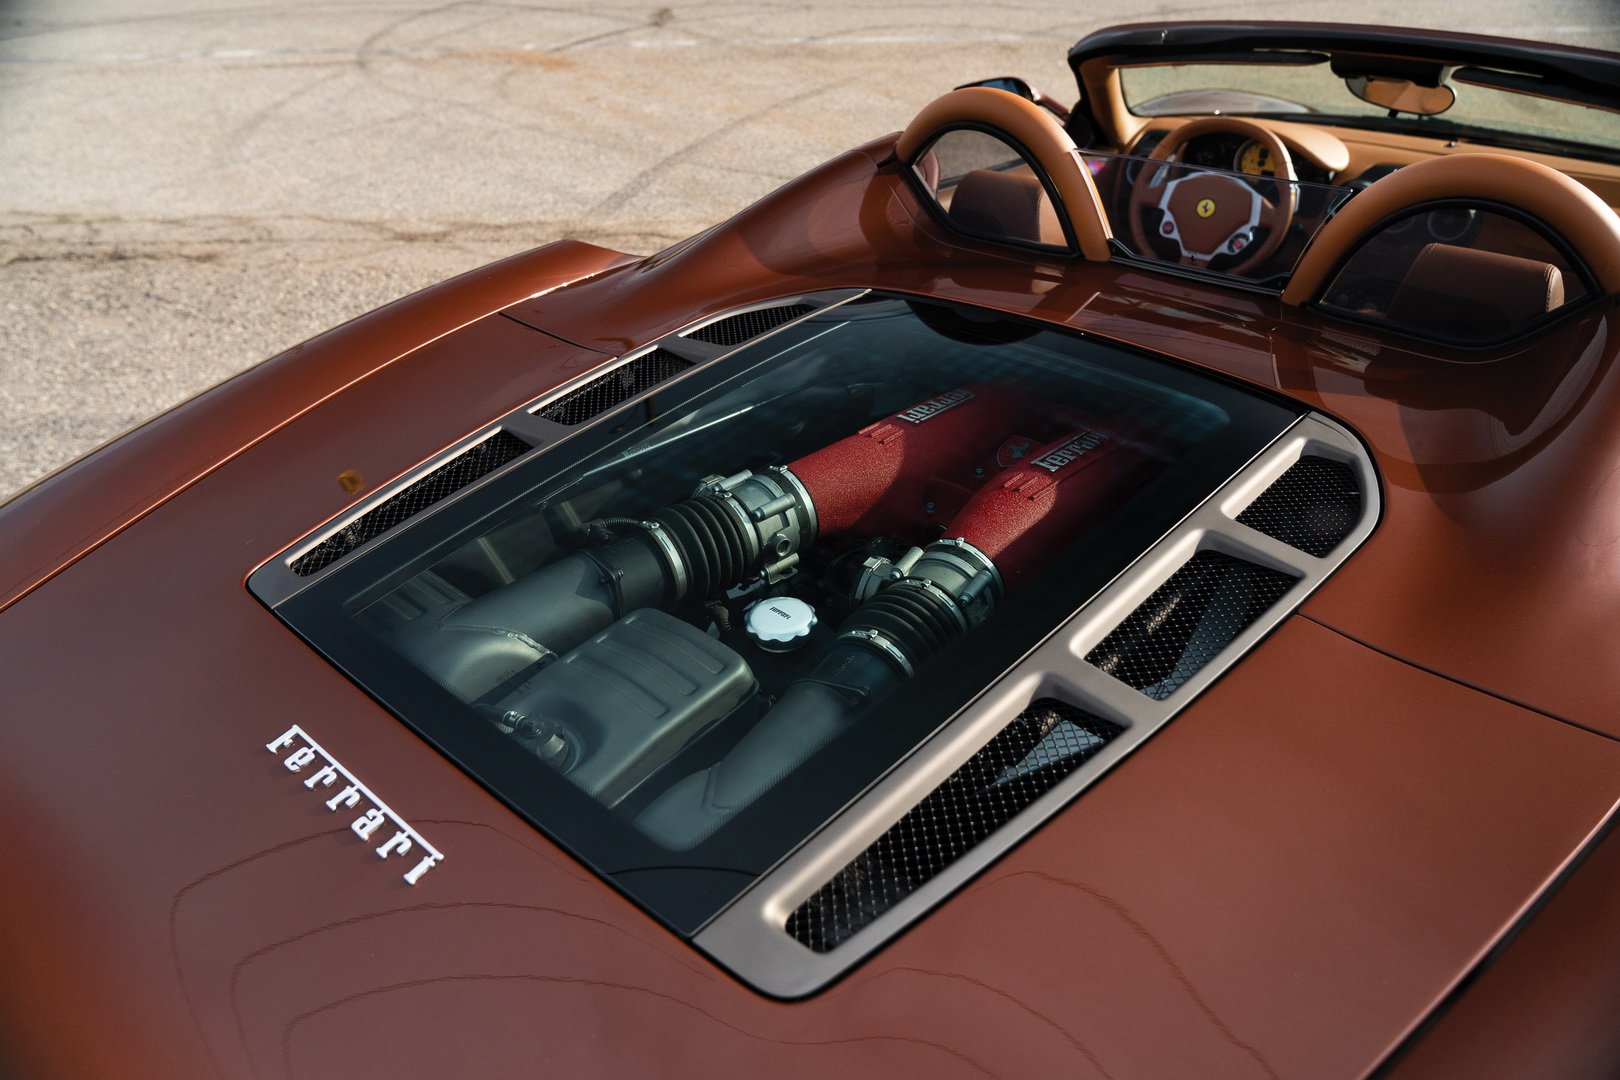 Ferrari F430 Spider in brown Classic Marrone color (18)